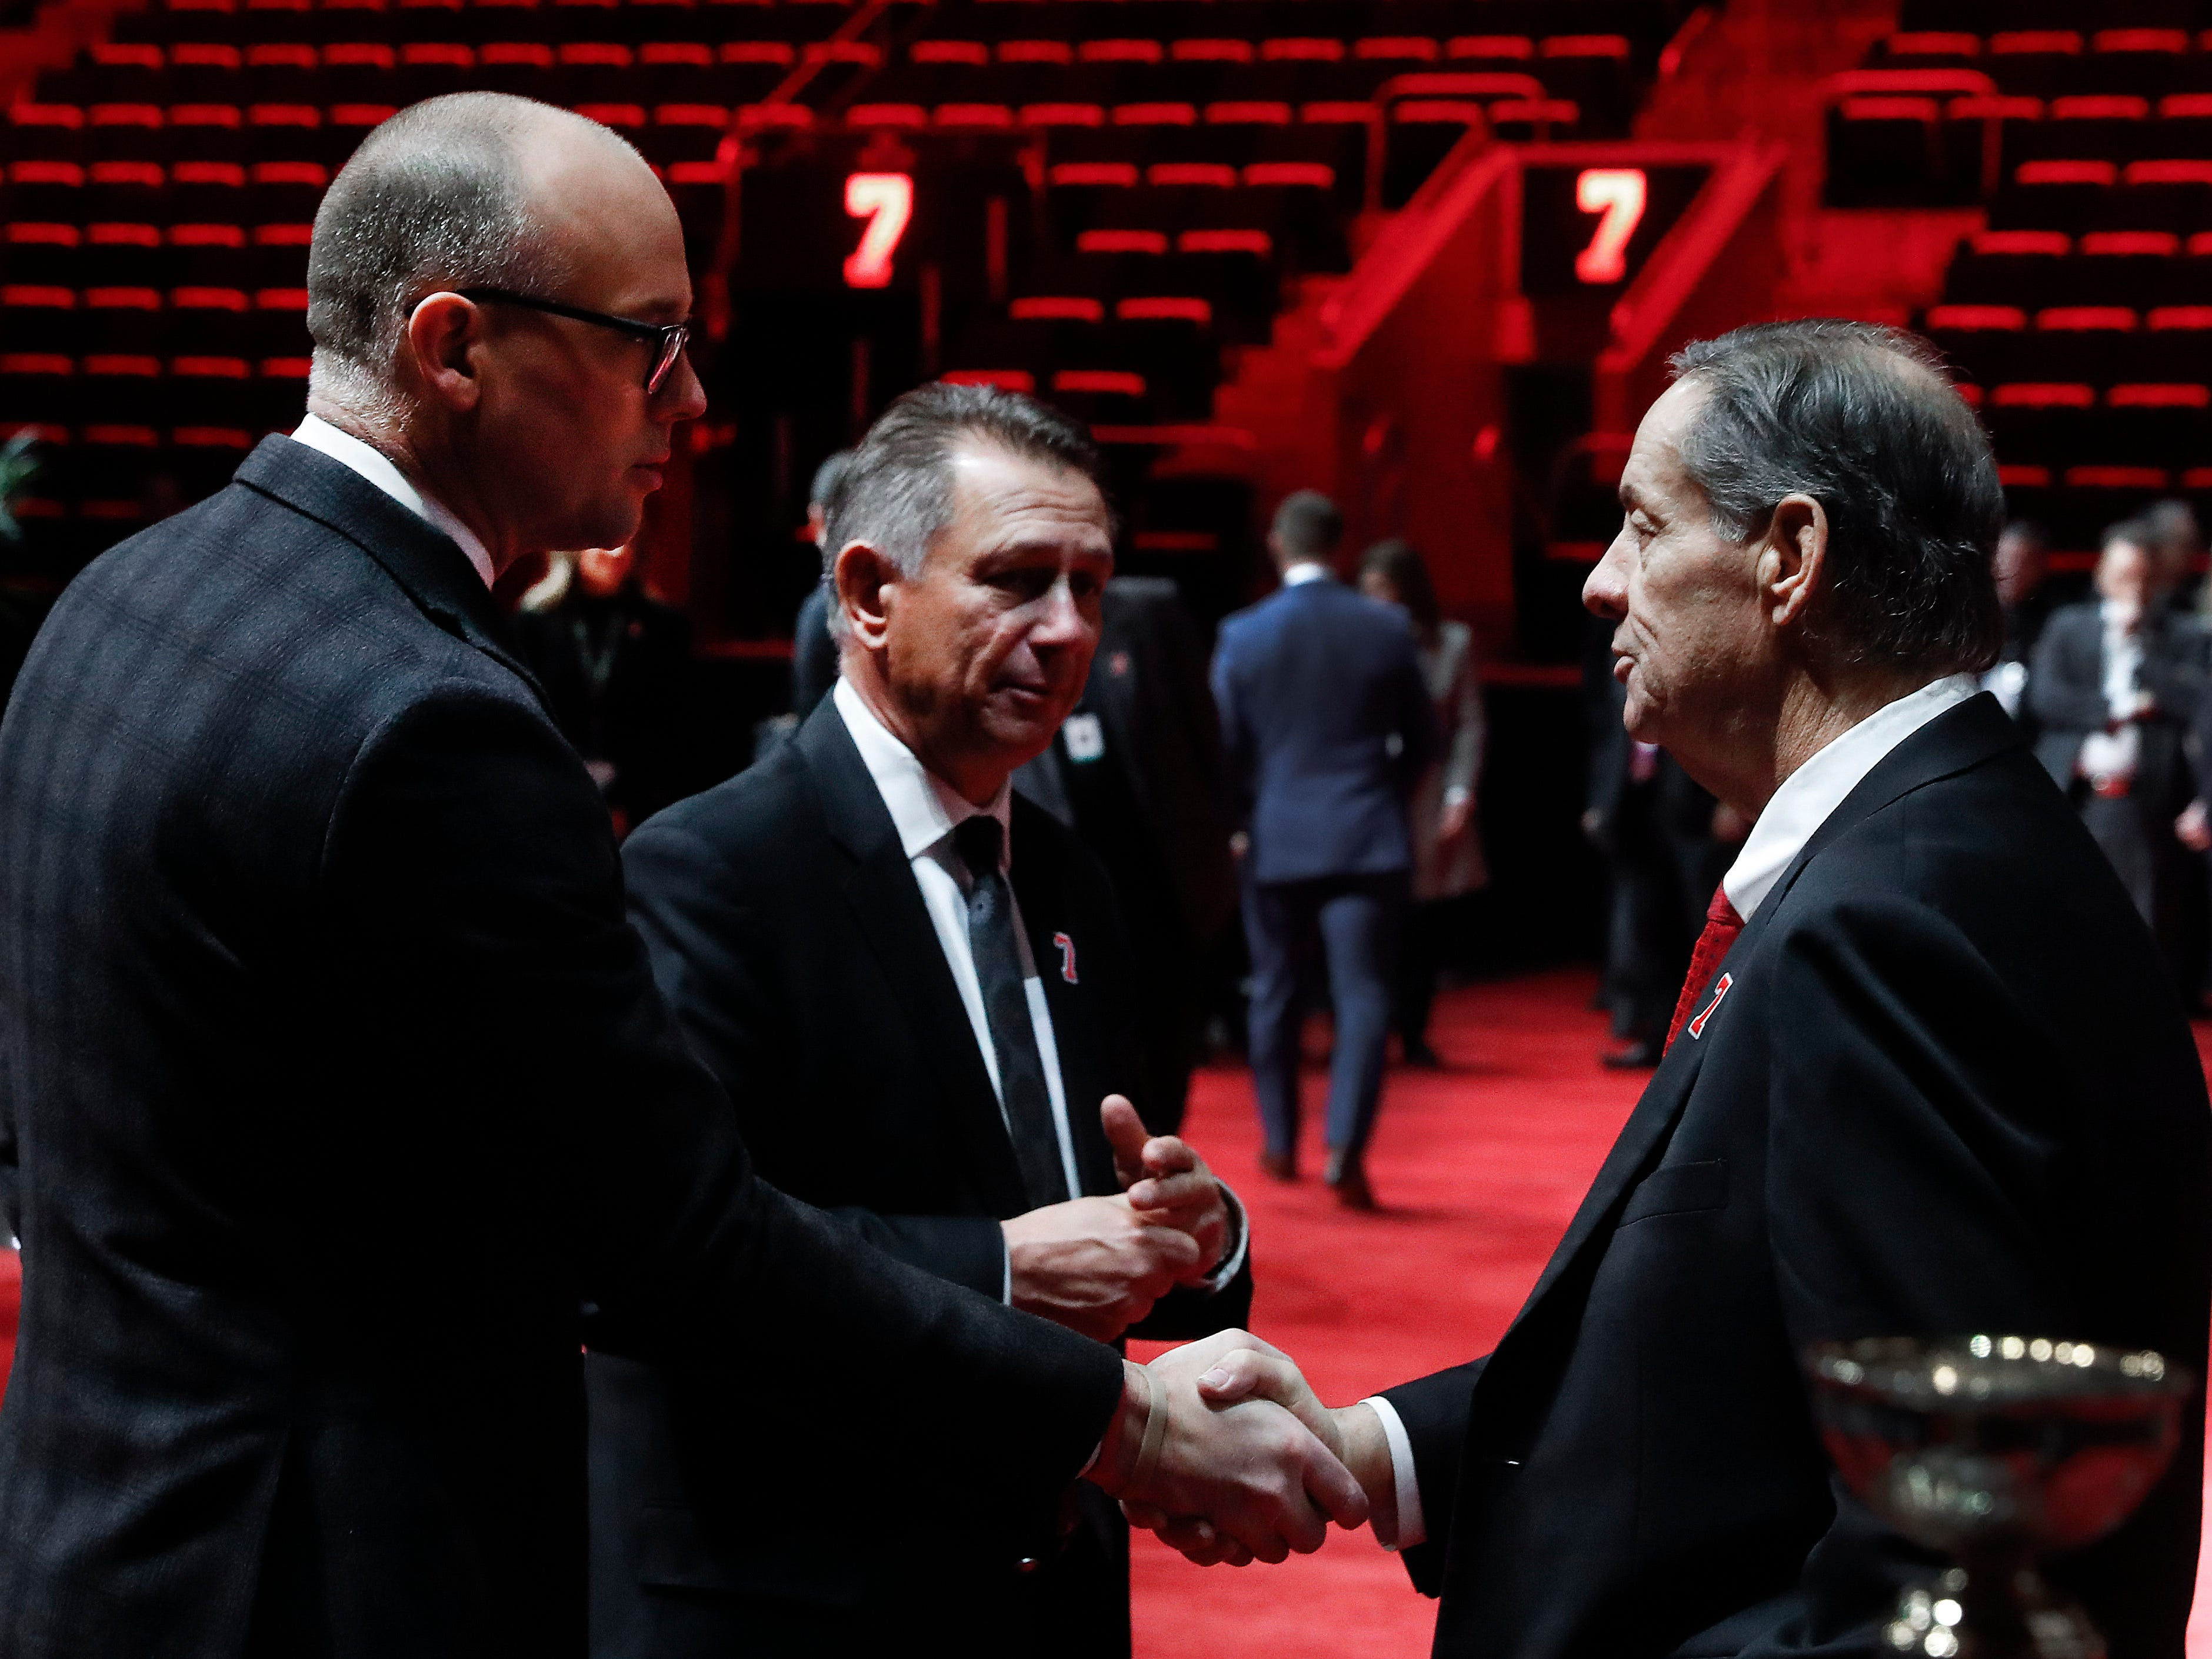 Detroit Red Wings head coach Jeff Blashill, left, and general manager Ken Holland, center, speak with Blake Lindsay, son of former player Ted Lindsay.